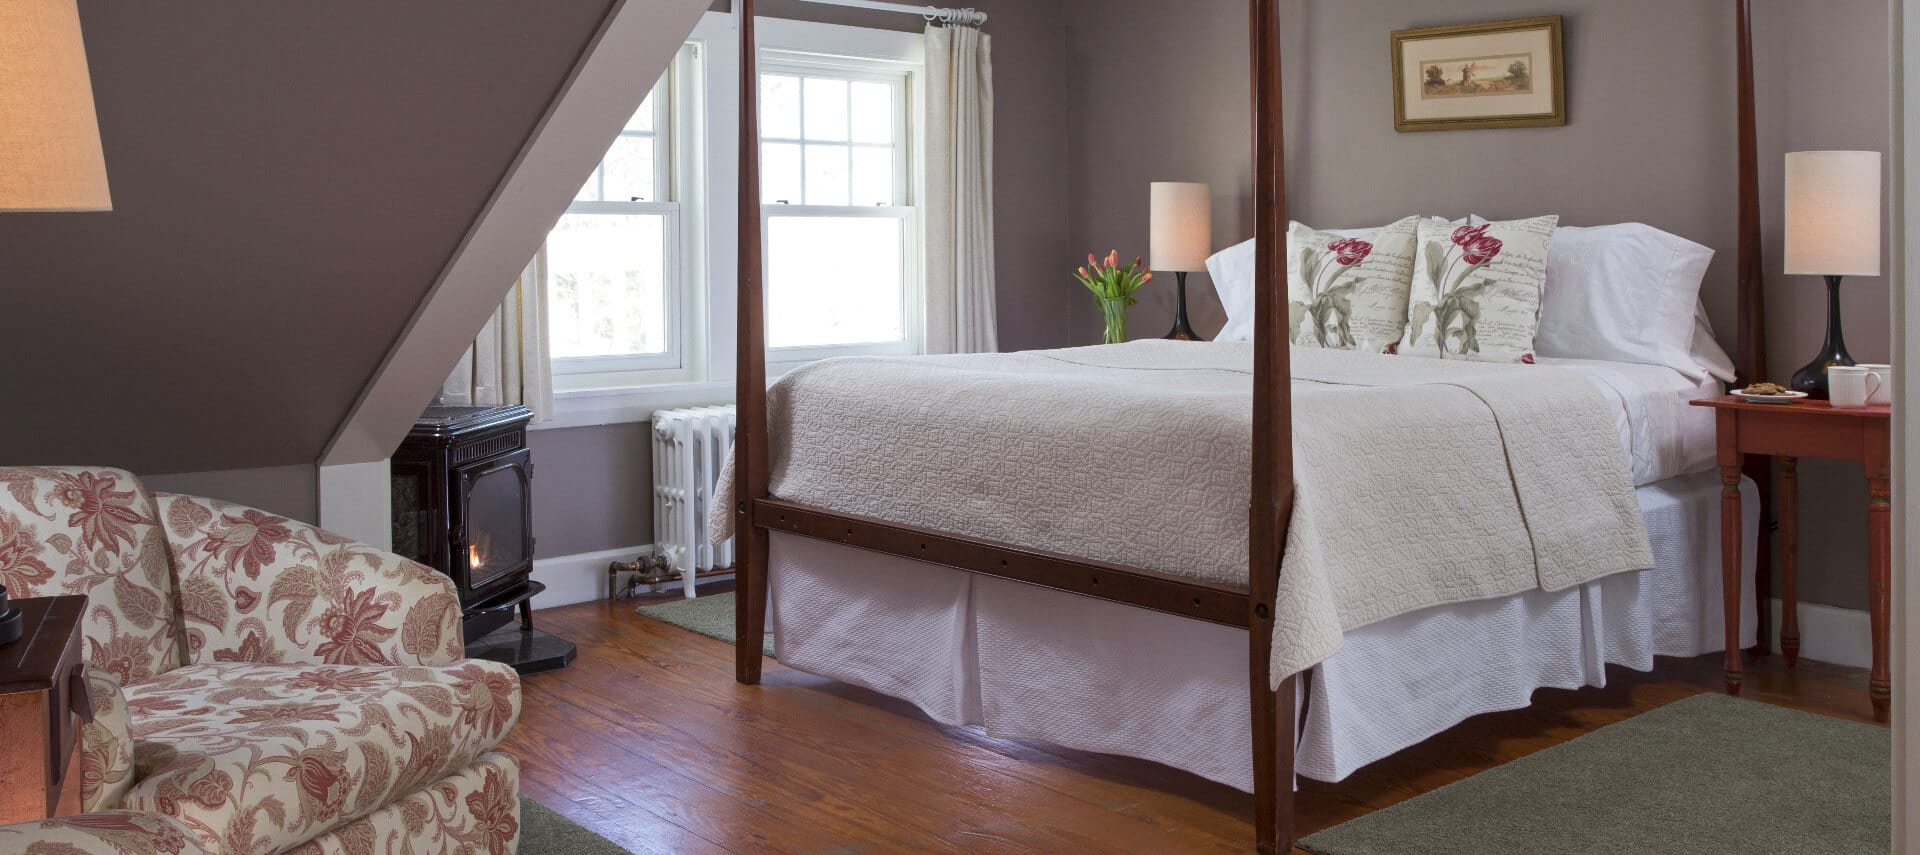 Gracious room painted in grey holds a large four-post bed with white bedding, and a small seating area under a pitched roof.